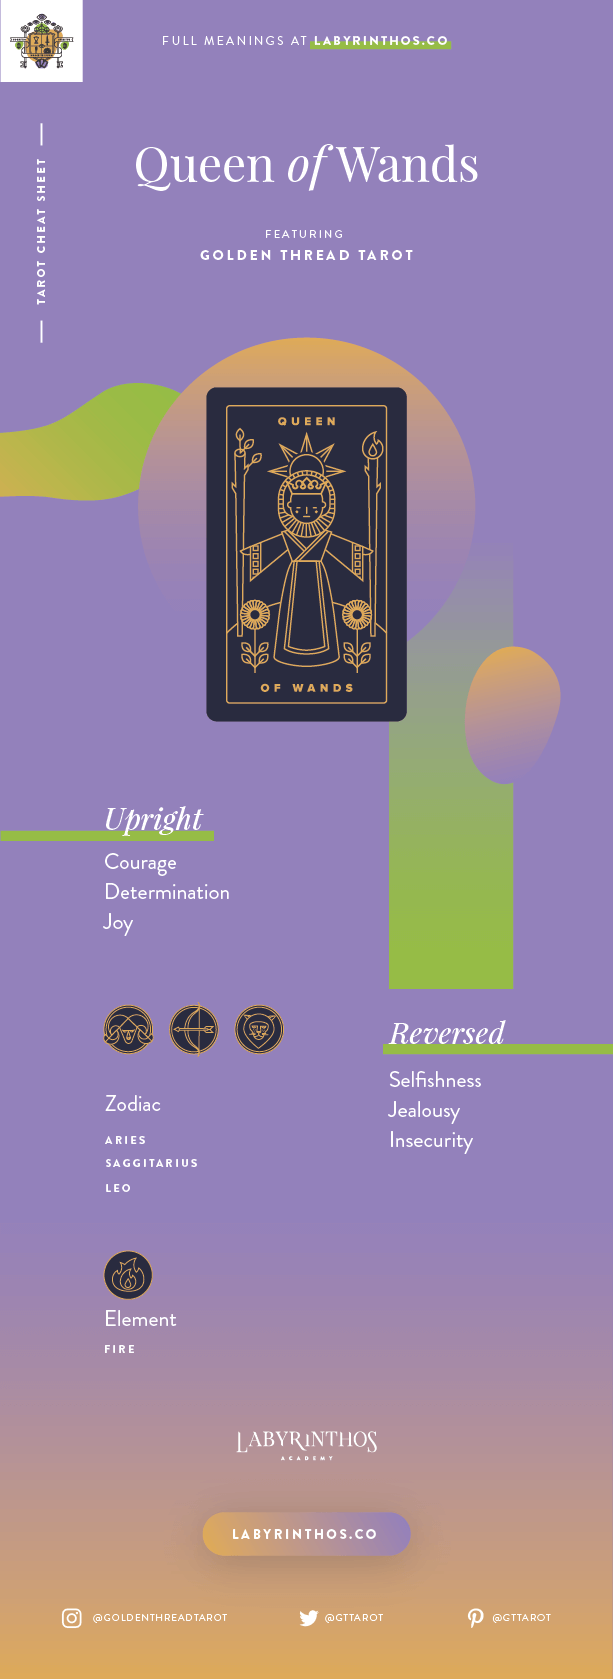 Queen of Wands Meaning - Tarot Card Meanings Cheat Sheet